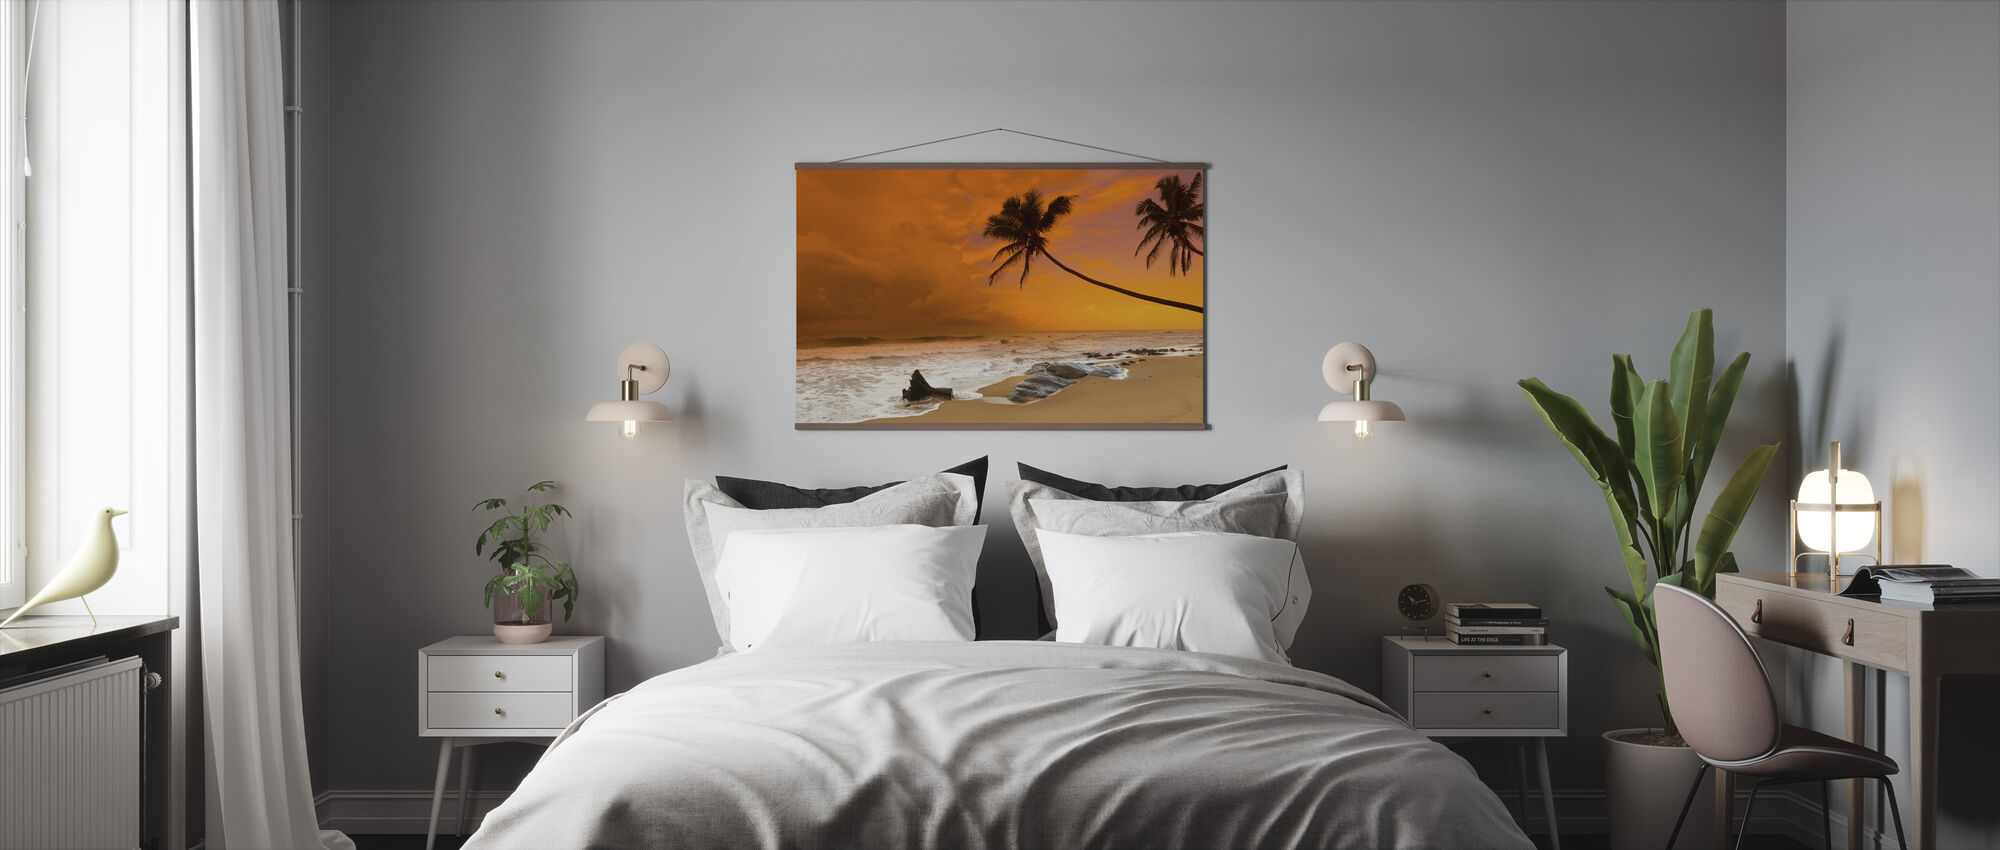 Sunset over the Sea - Poster - Bedroom